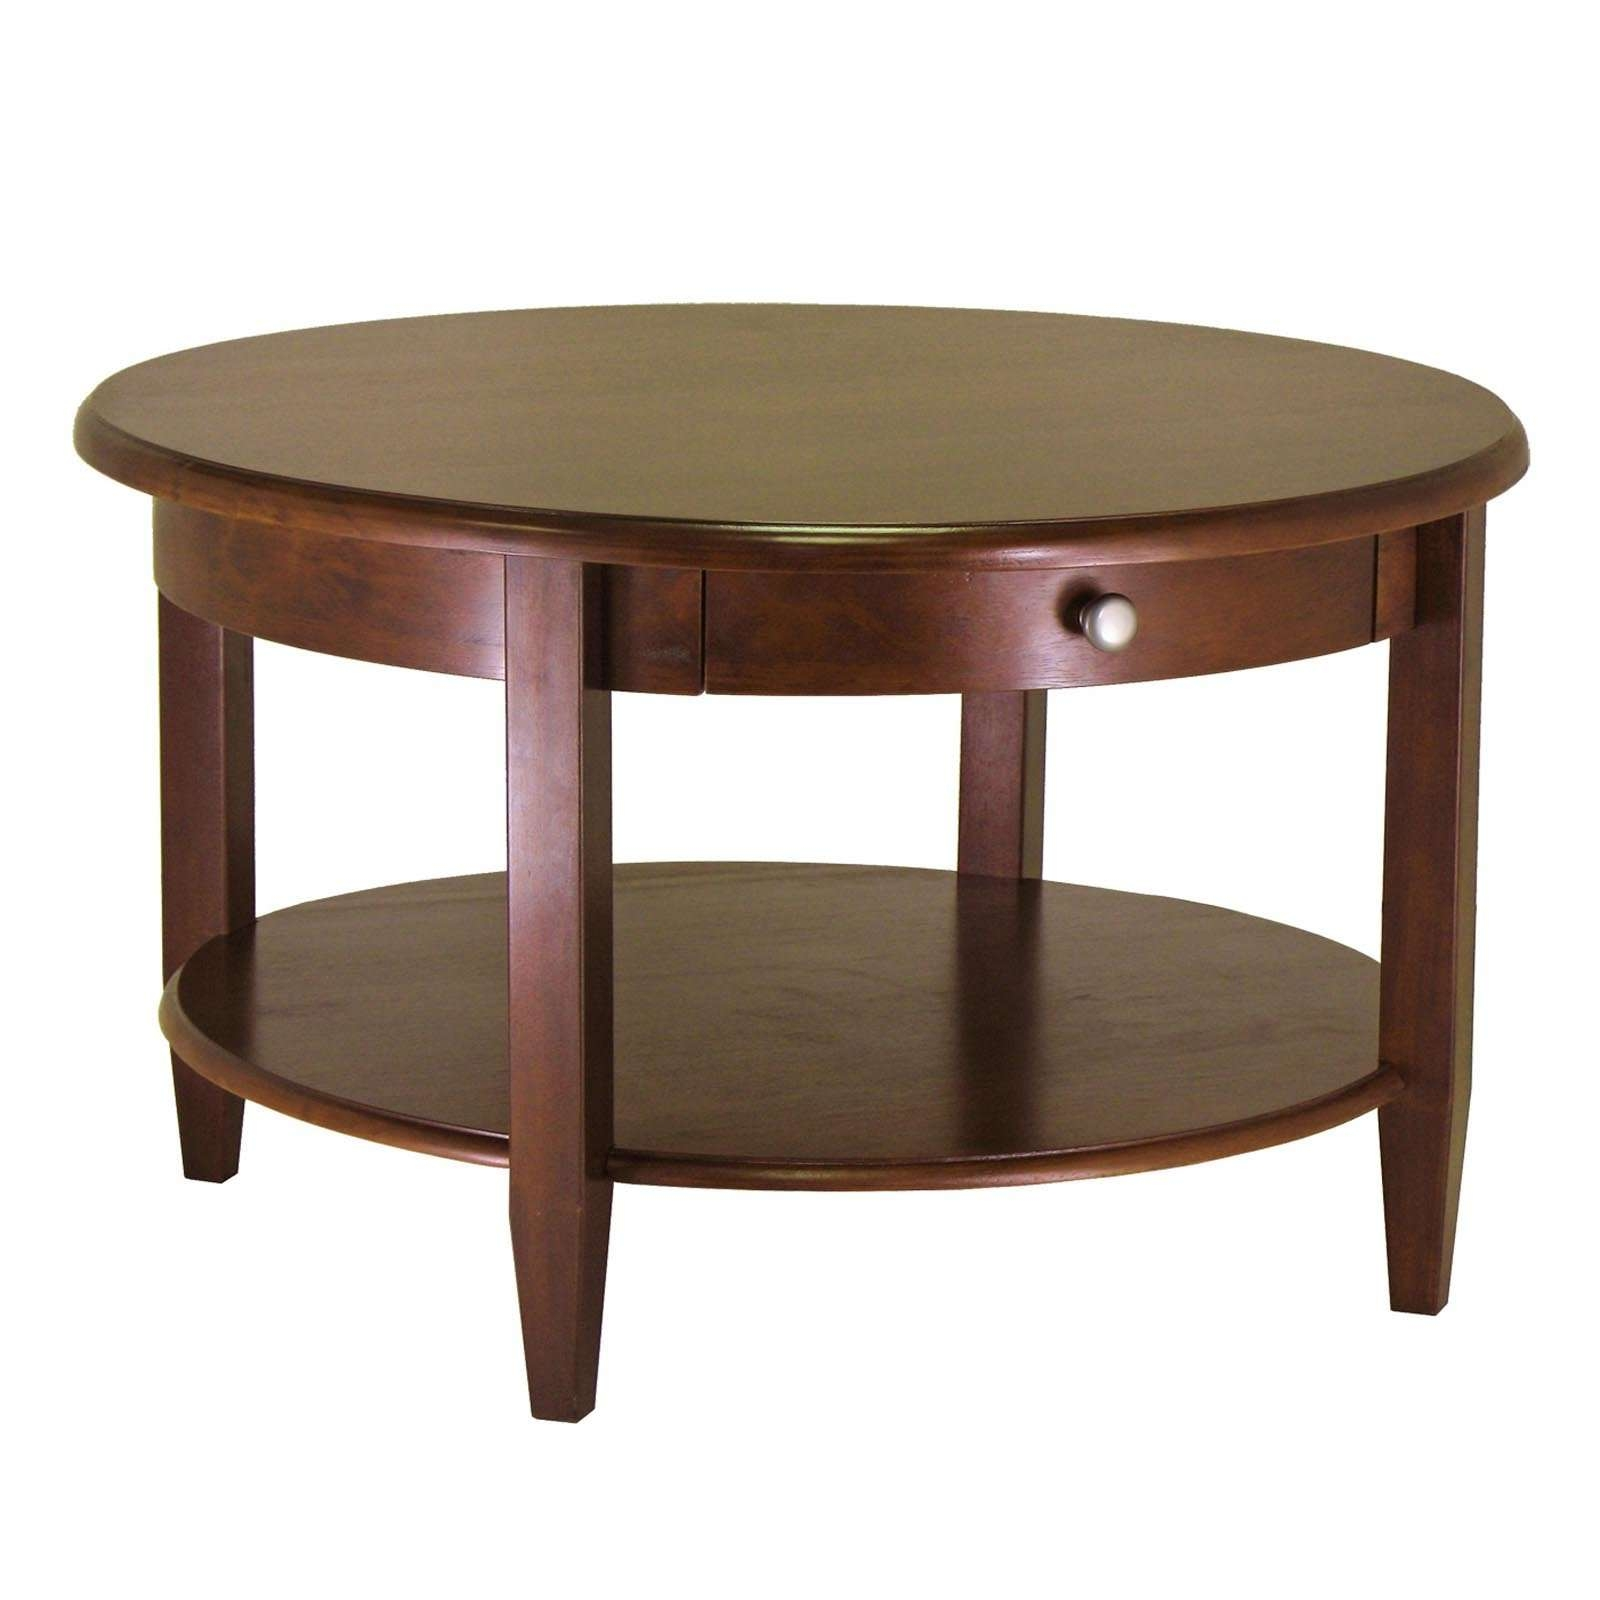 Coffee Tables : Round Table Coffee Glass Top Circle Square And Pertaining To Most Recently Released Small Circle Coffee Tables (View 7 of 20)